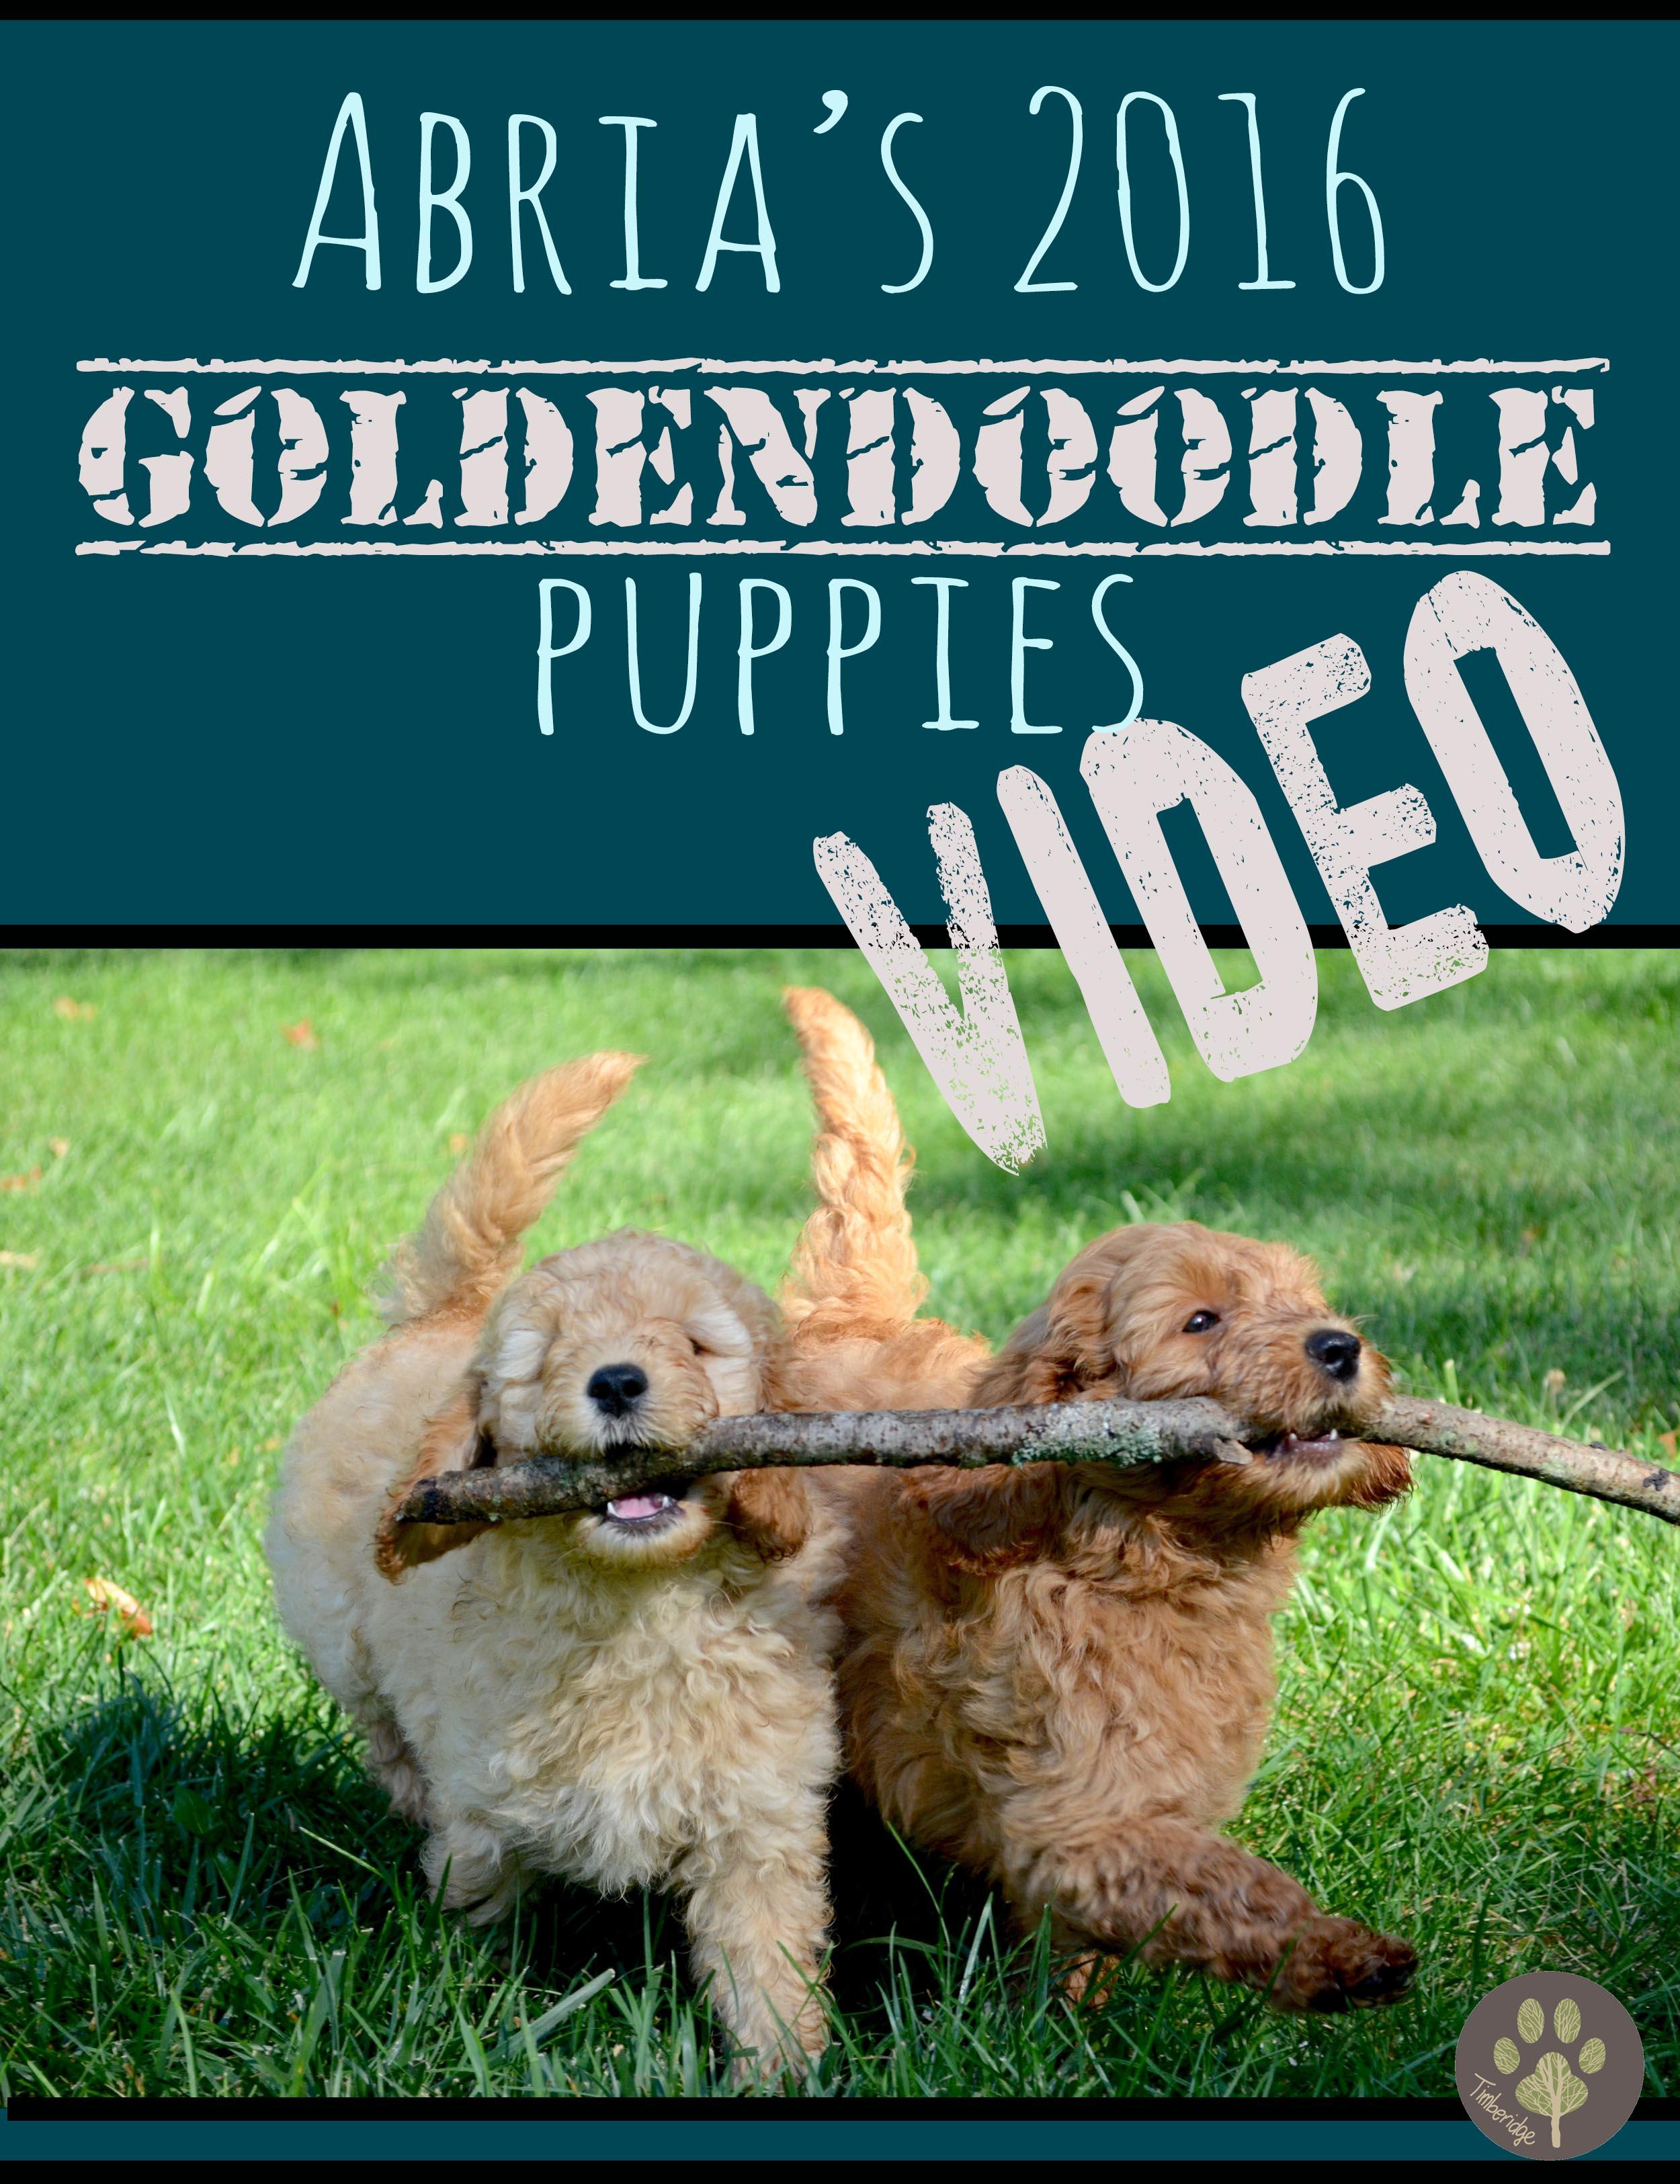 Puppy Video Abria S Miniature English Goldendoodle Puppies At 6 Weeks Old 2016 Timberidge Goldendoodles